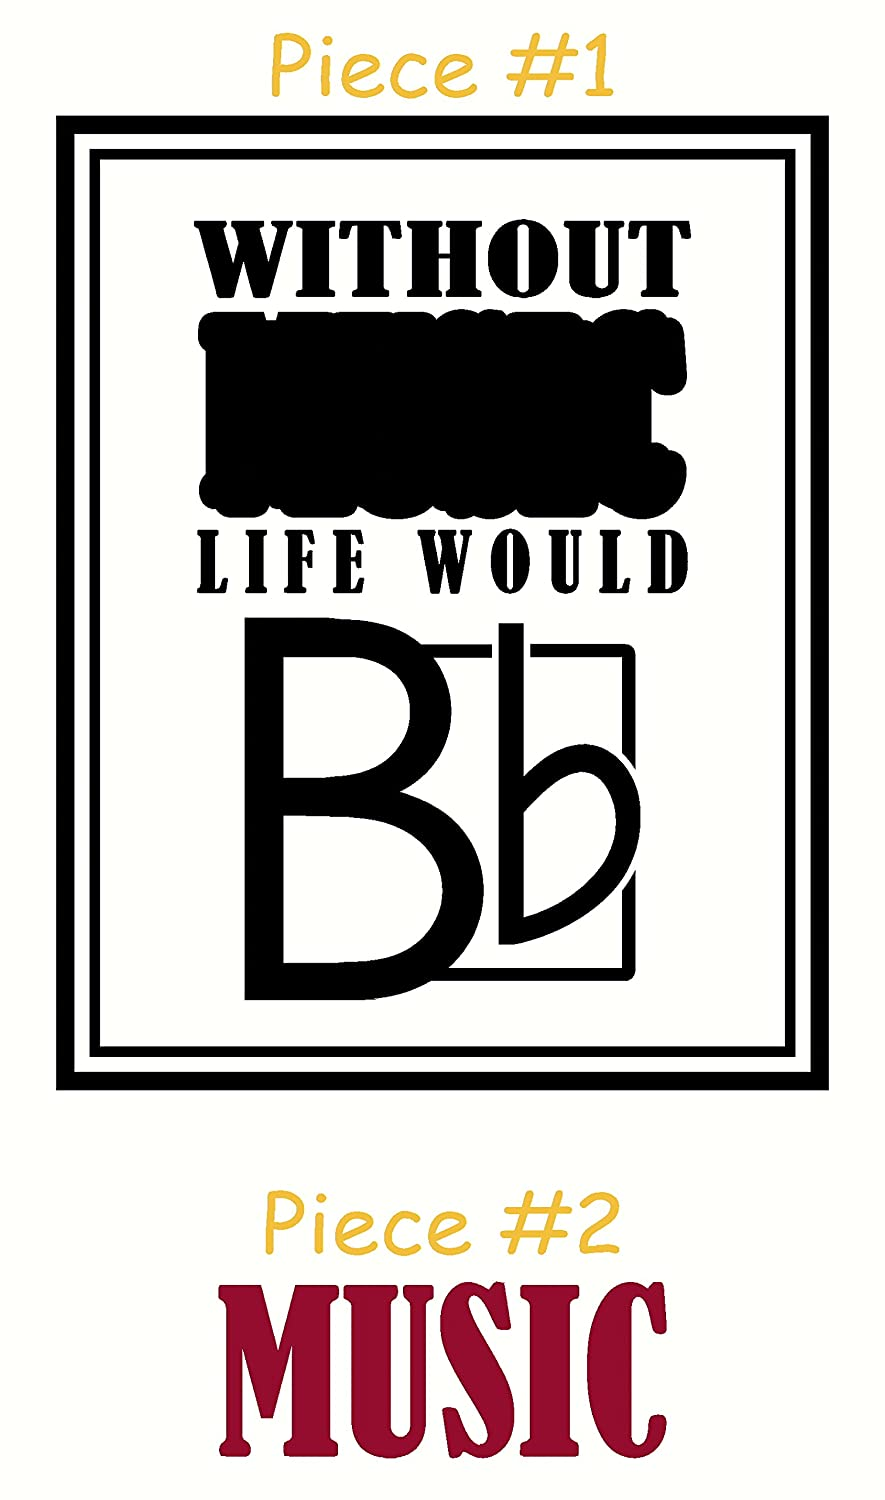 Wall Decor Plus More WDPM3365 Without Music Life Would be Flat with Note Wall Art Decal Vinyl Sticker 2 Color Set Black /& Red 23x18-Inch